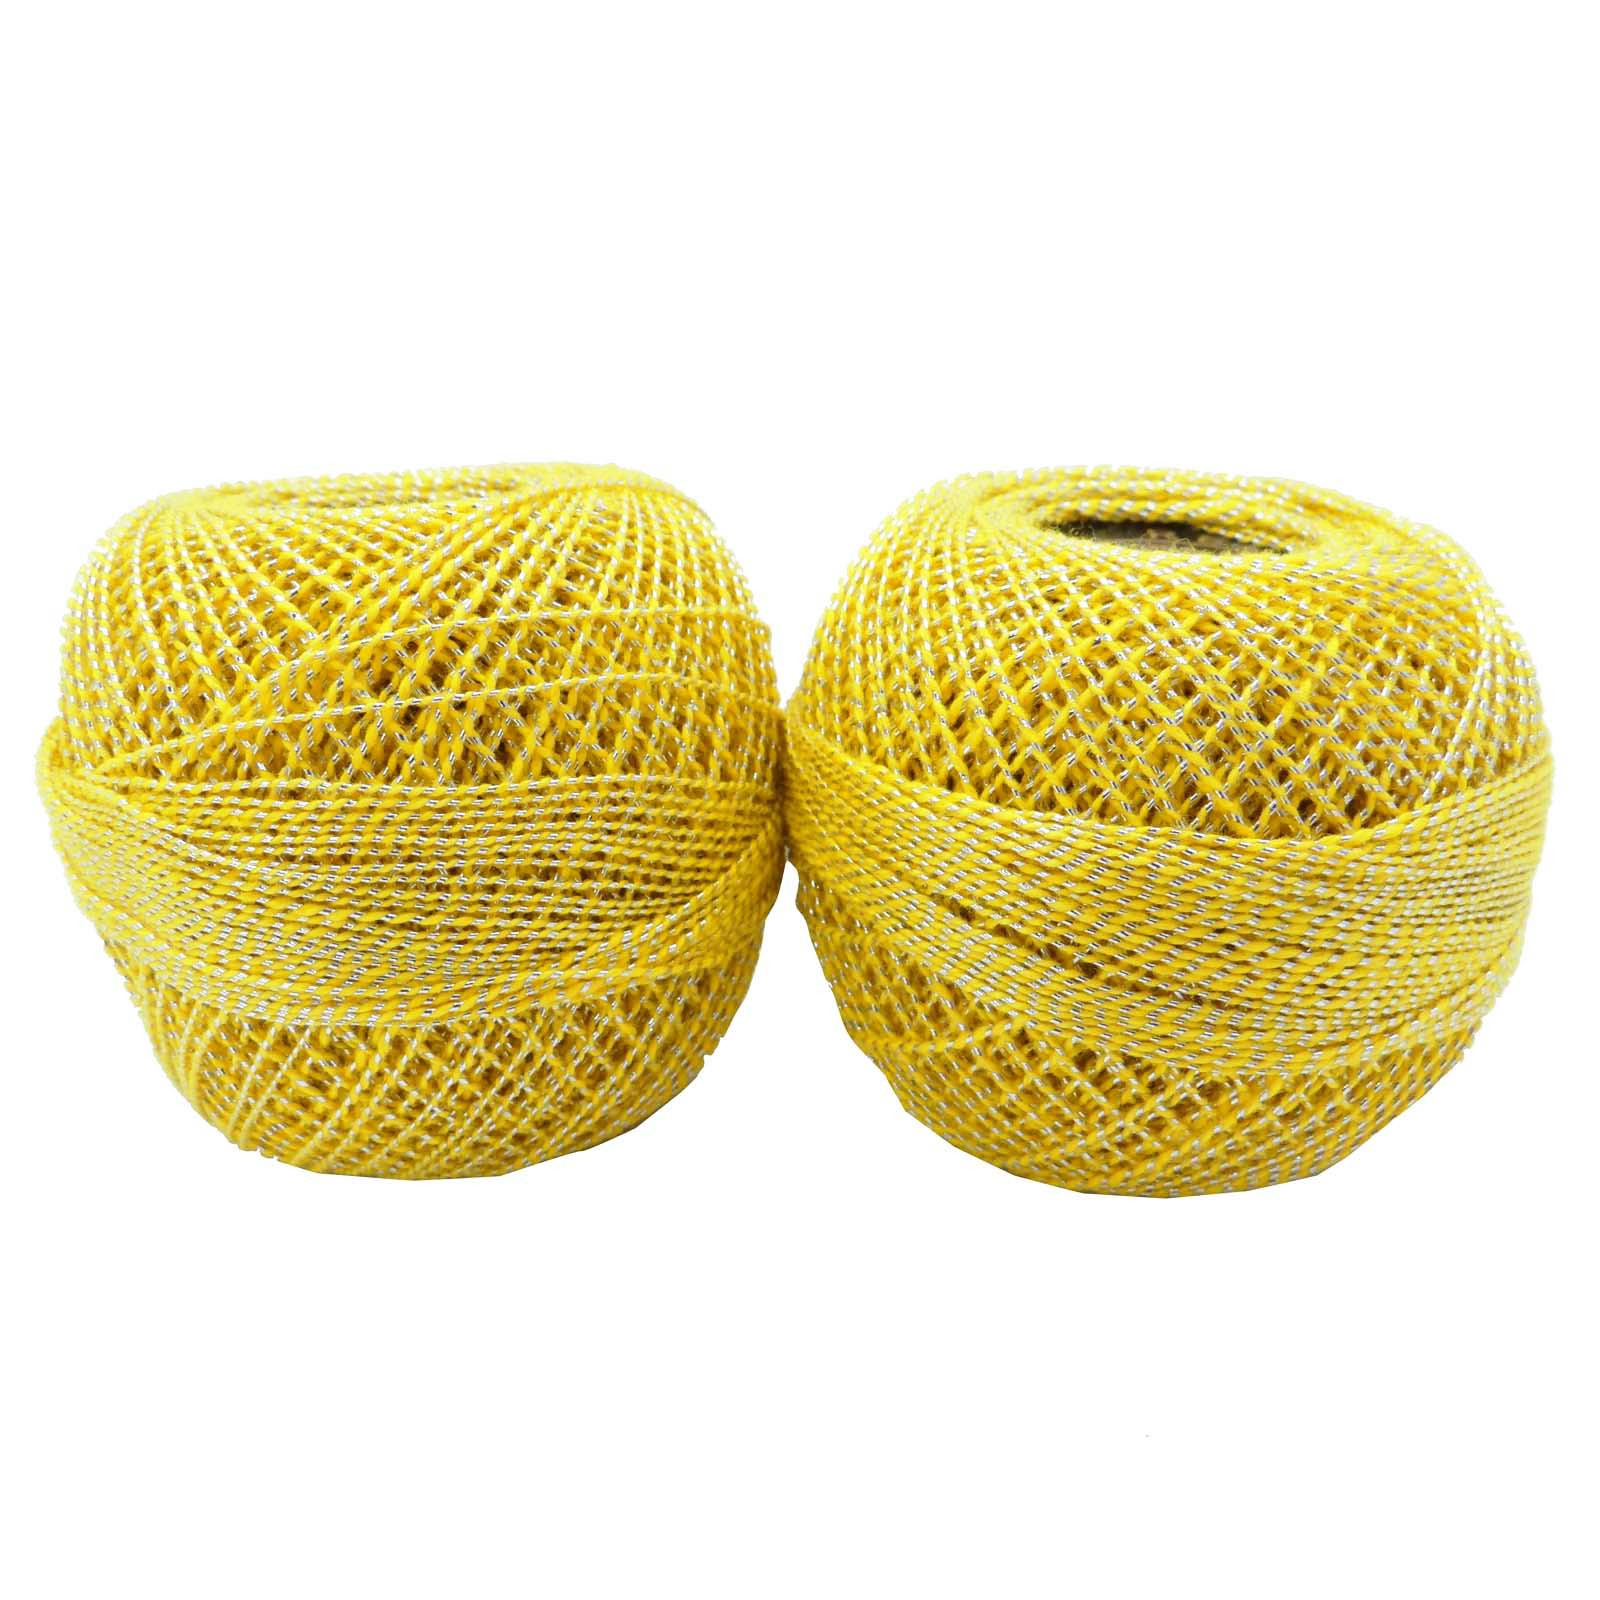 Yarn with Metallic Thread Lovely Cotton Crochet Thread Metallic Embroidery Mercerized Yarn Of Lovely 44 Pics Yarn with Metallic Thread